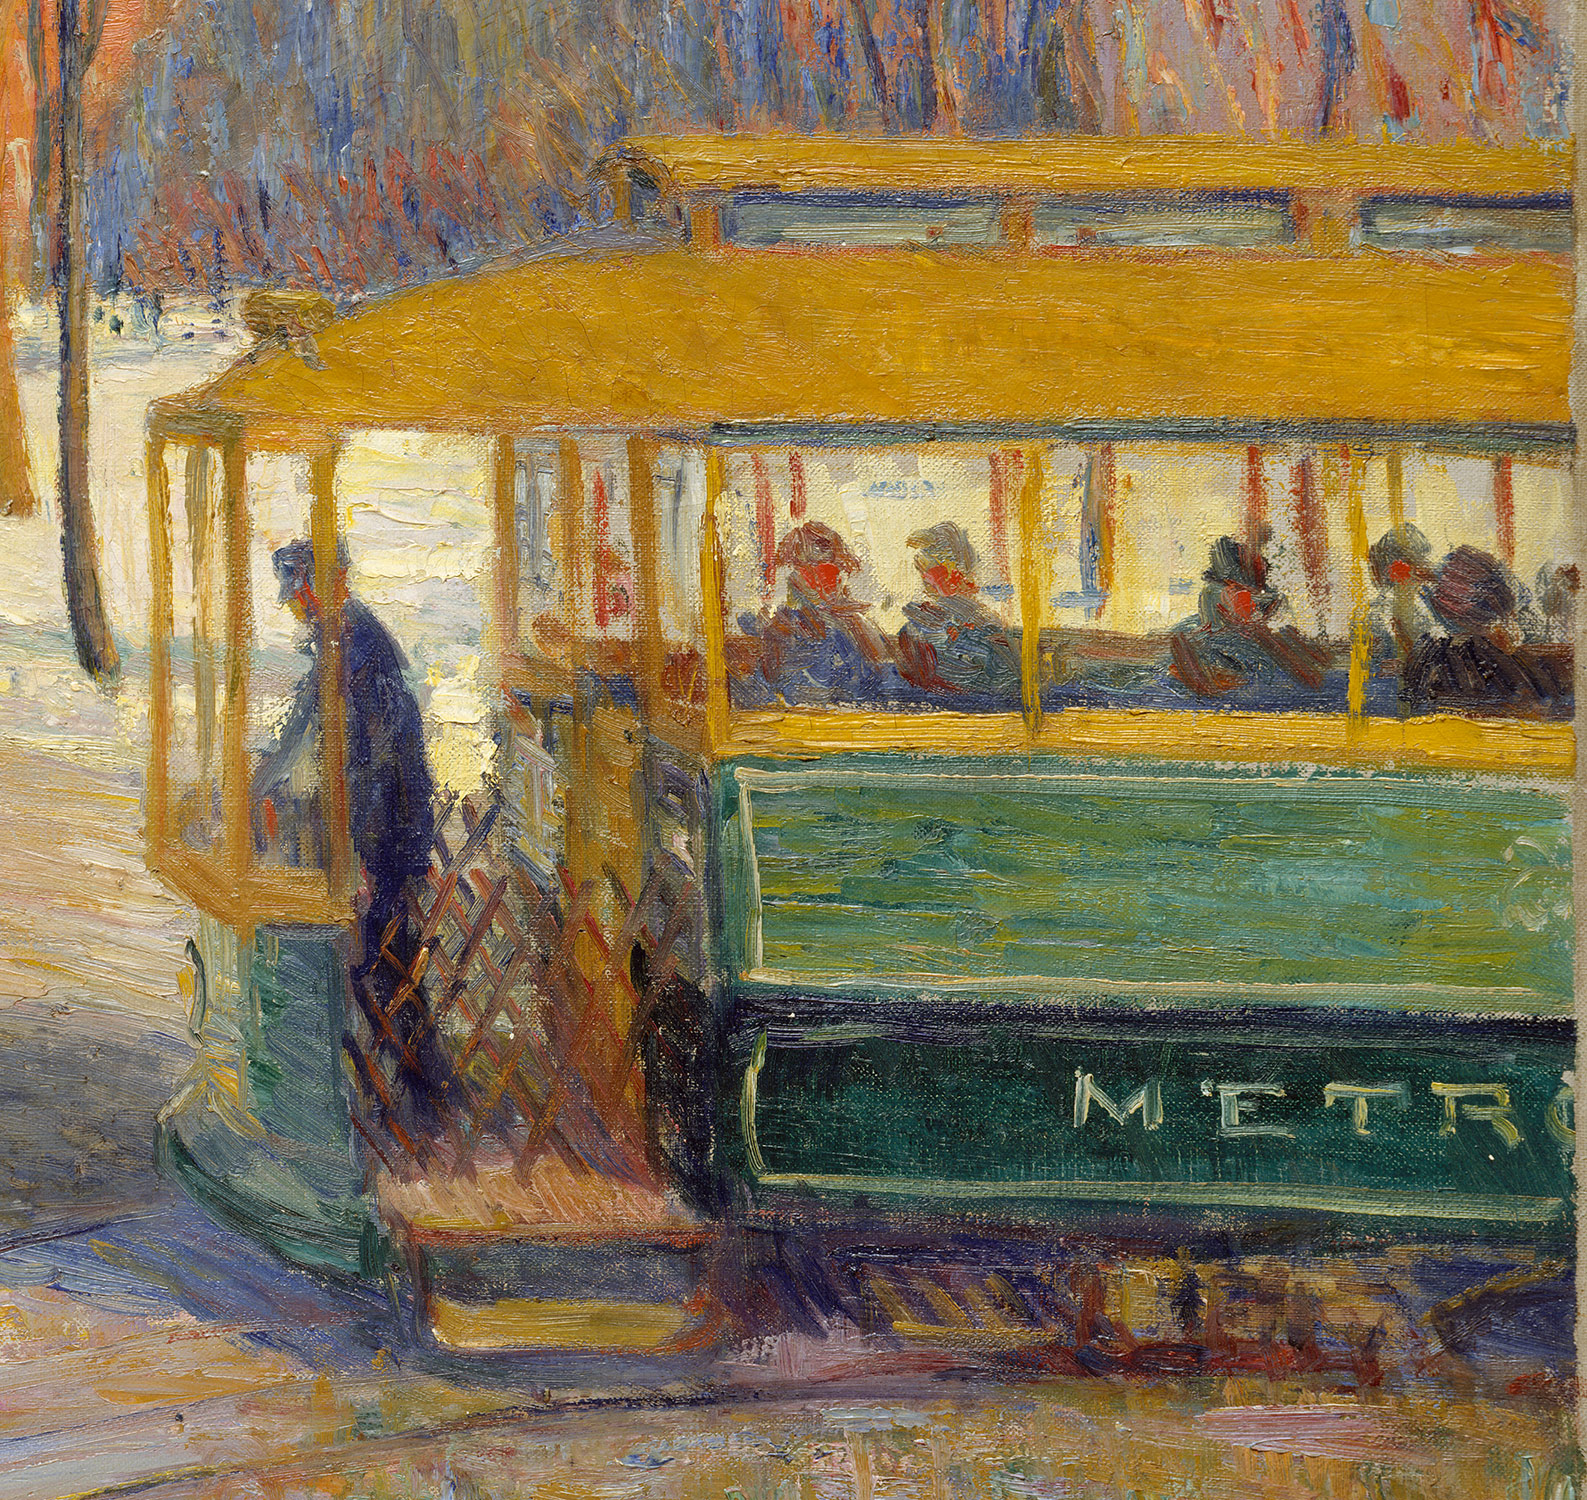 Car Paint Colors >> The Green Car | William James Glackens | 37.73 | Work of ...